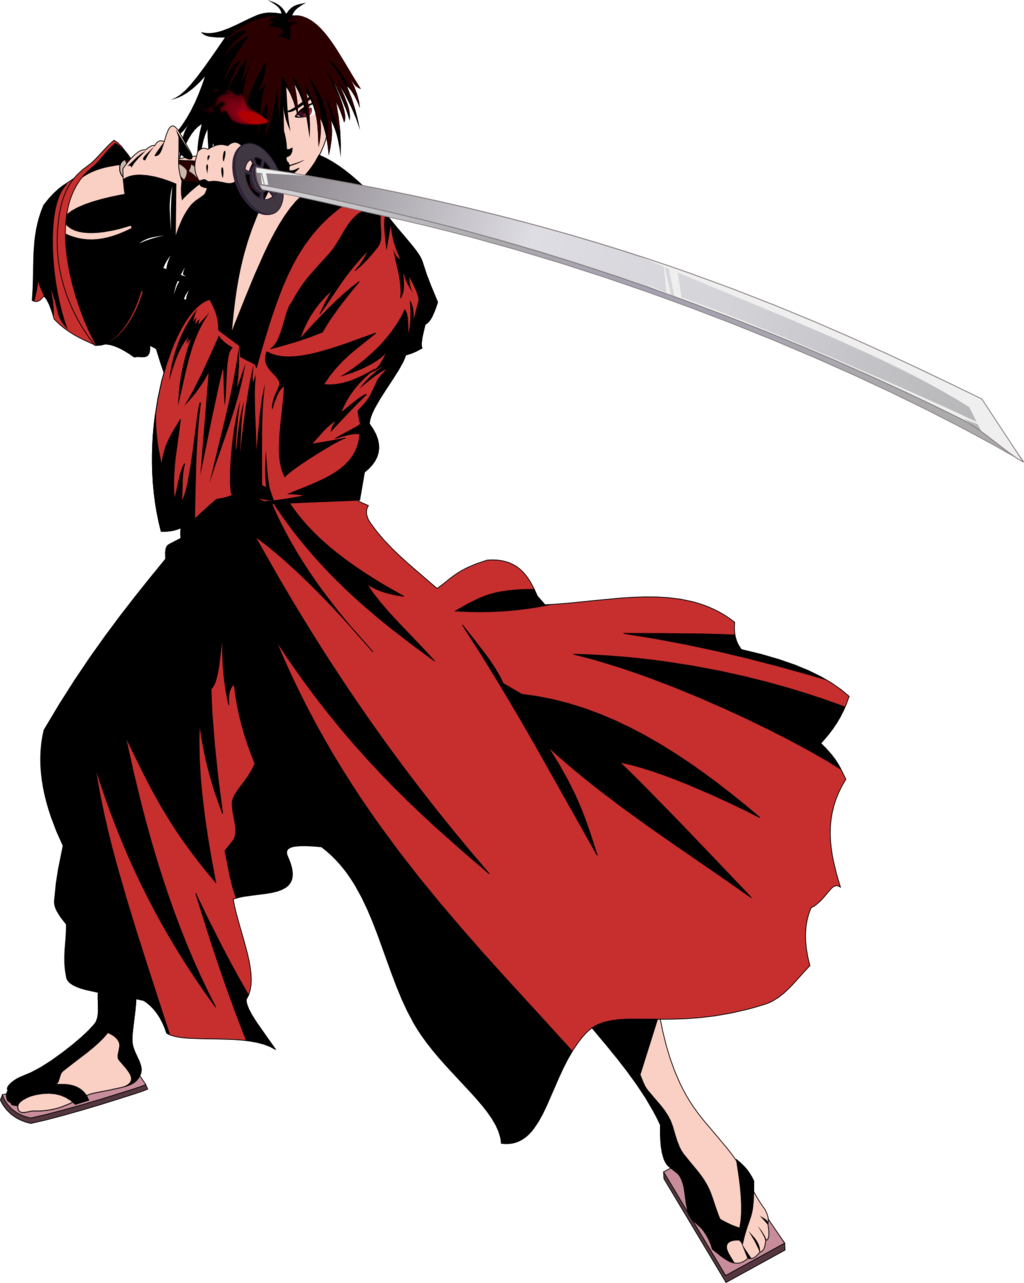 Samurai png images free. Warrior clipart medieval warrior